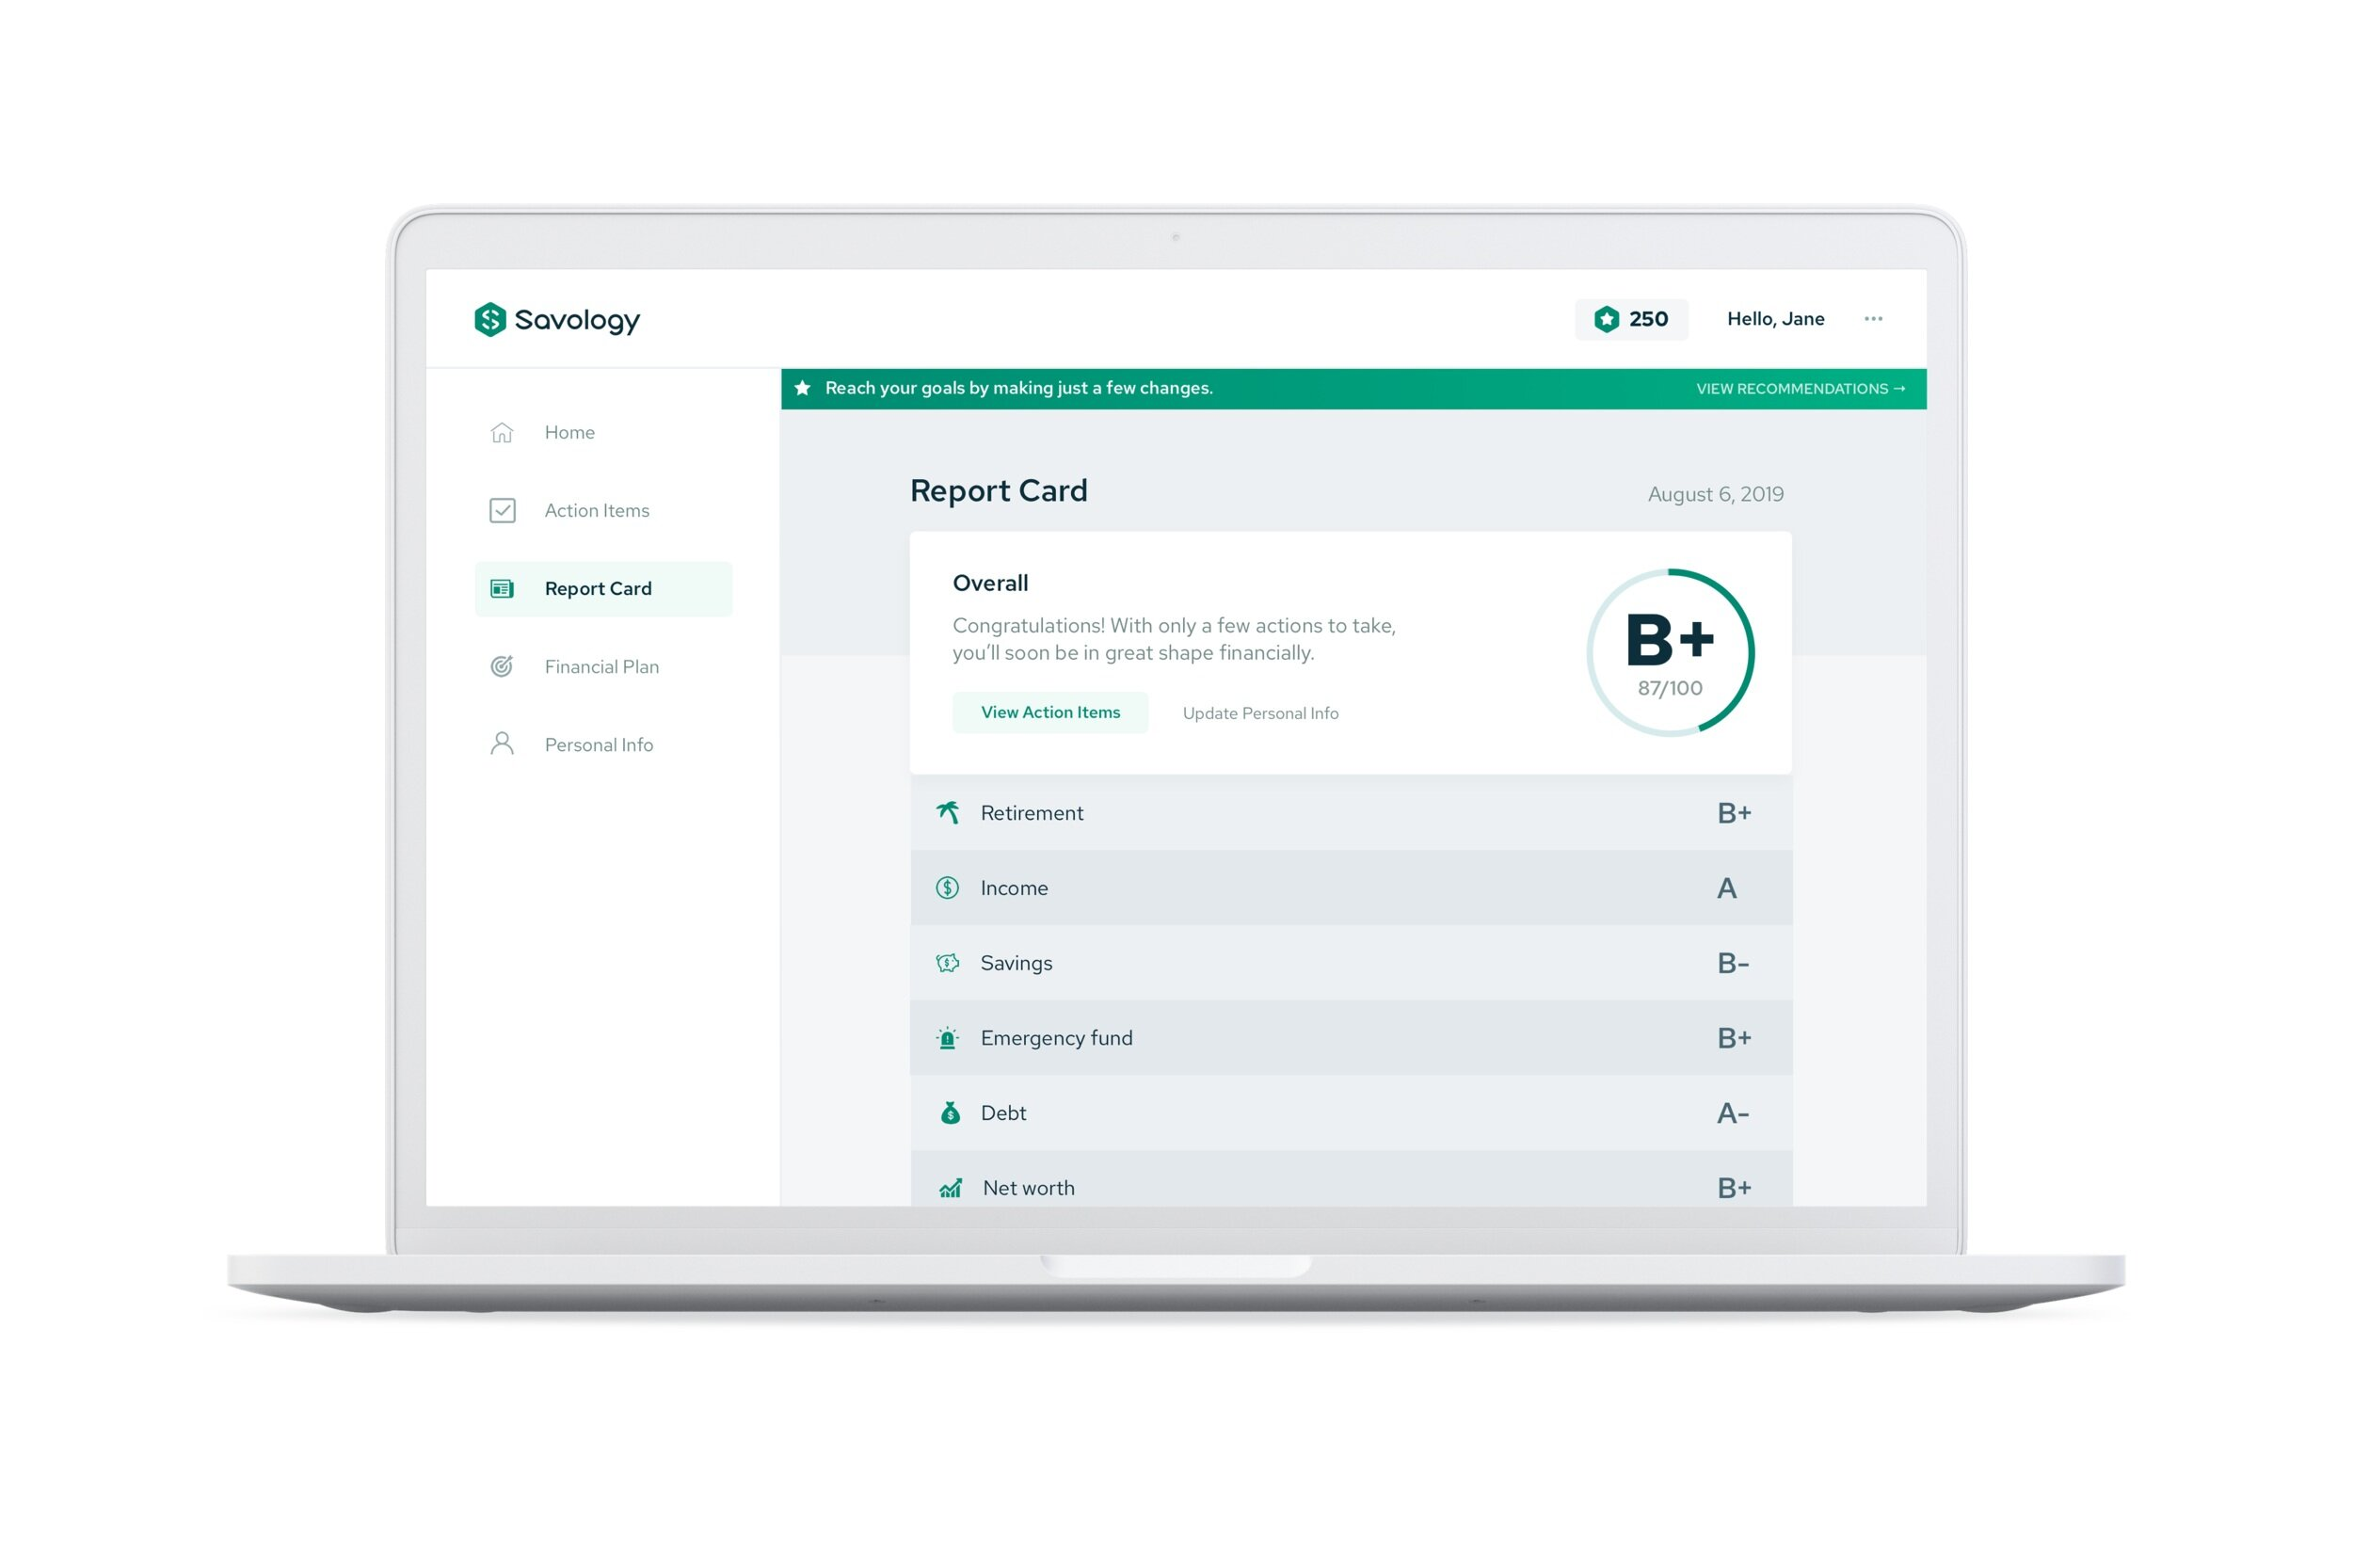 An image of a financial report card from savology.com